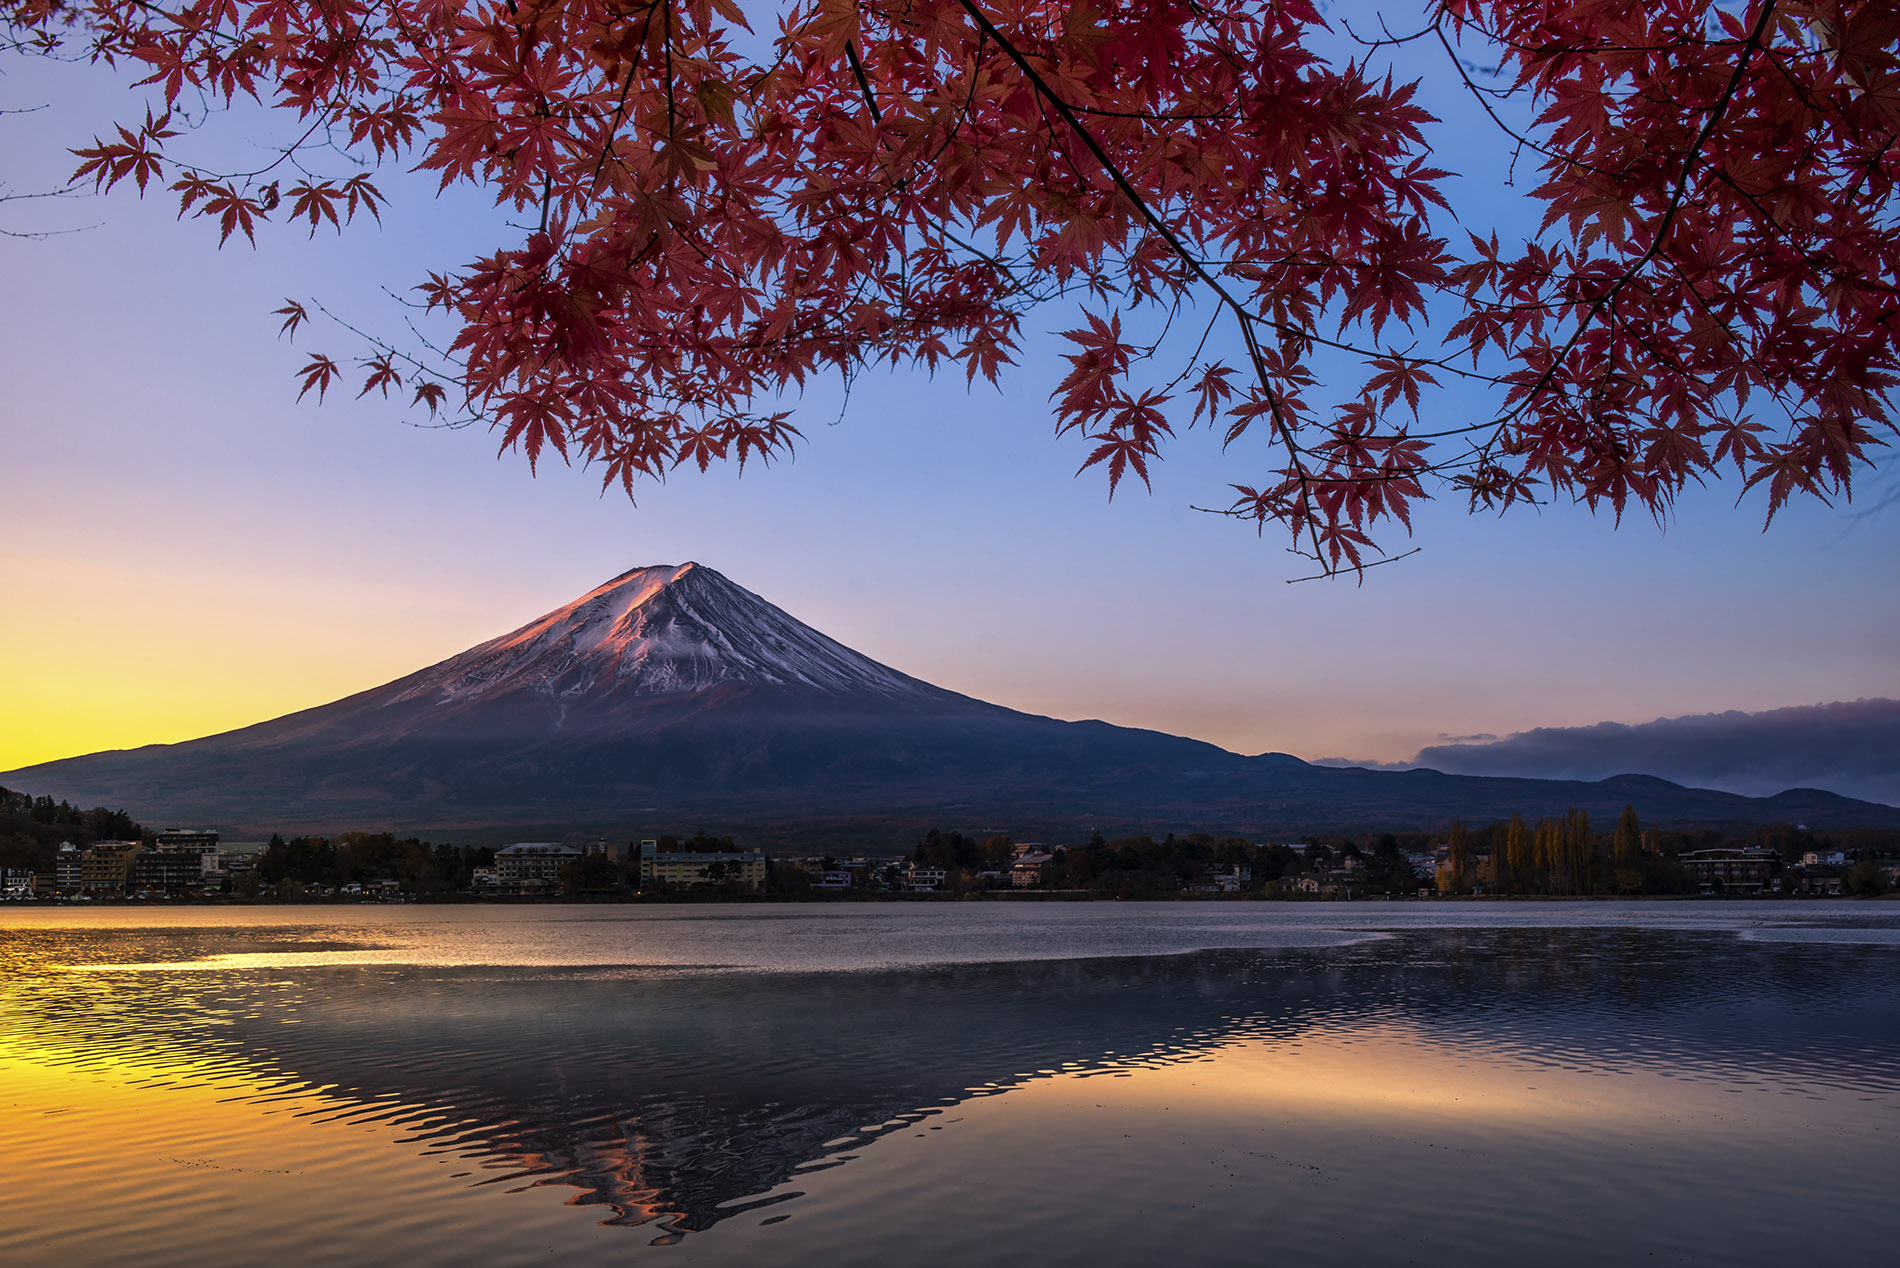 a large body of water surrounded by trees with Mount Fuji in the background